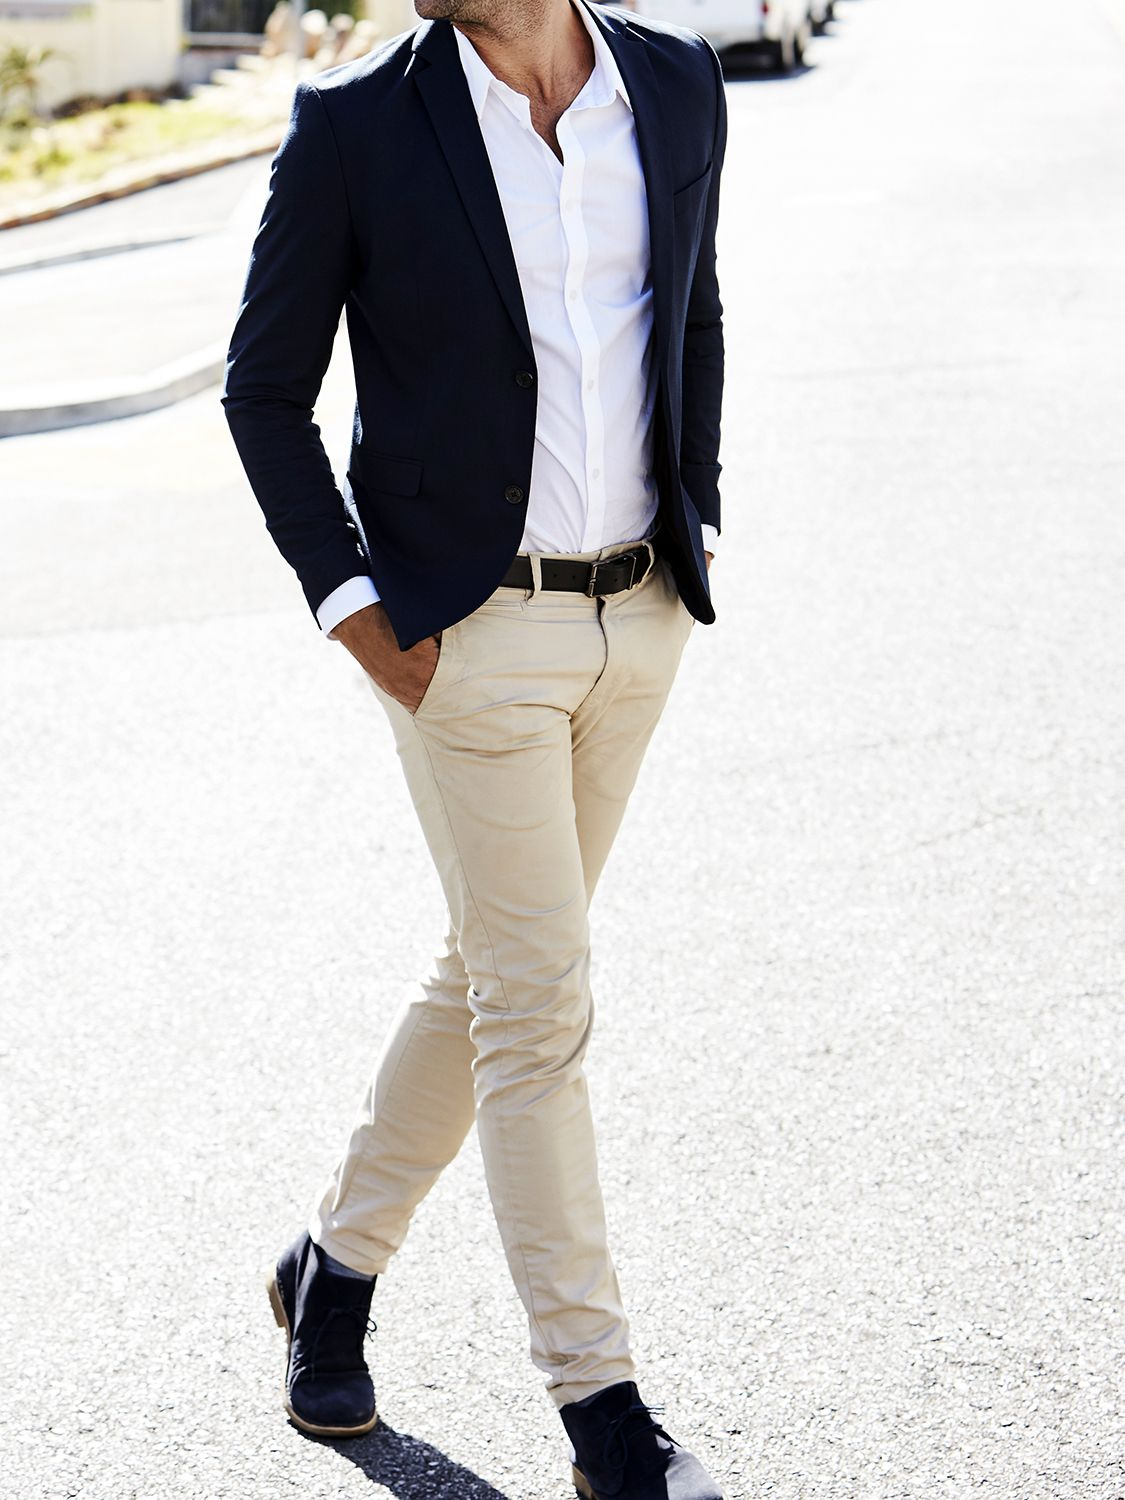 Men's outfit idea for 2021 with navy plain blazer, white casual shirt, stone chinos, suede shoes / desert shoes. Suitable for spring and autumn.